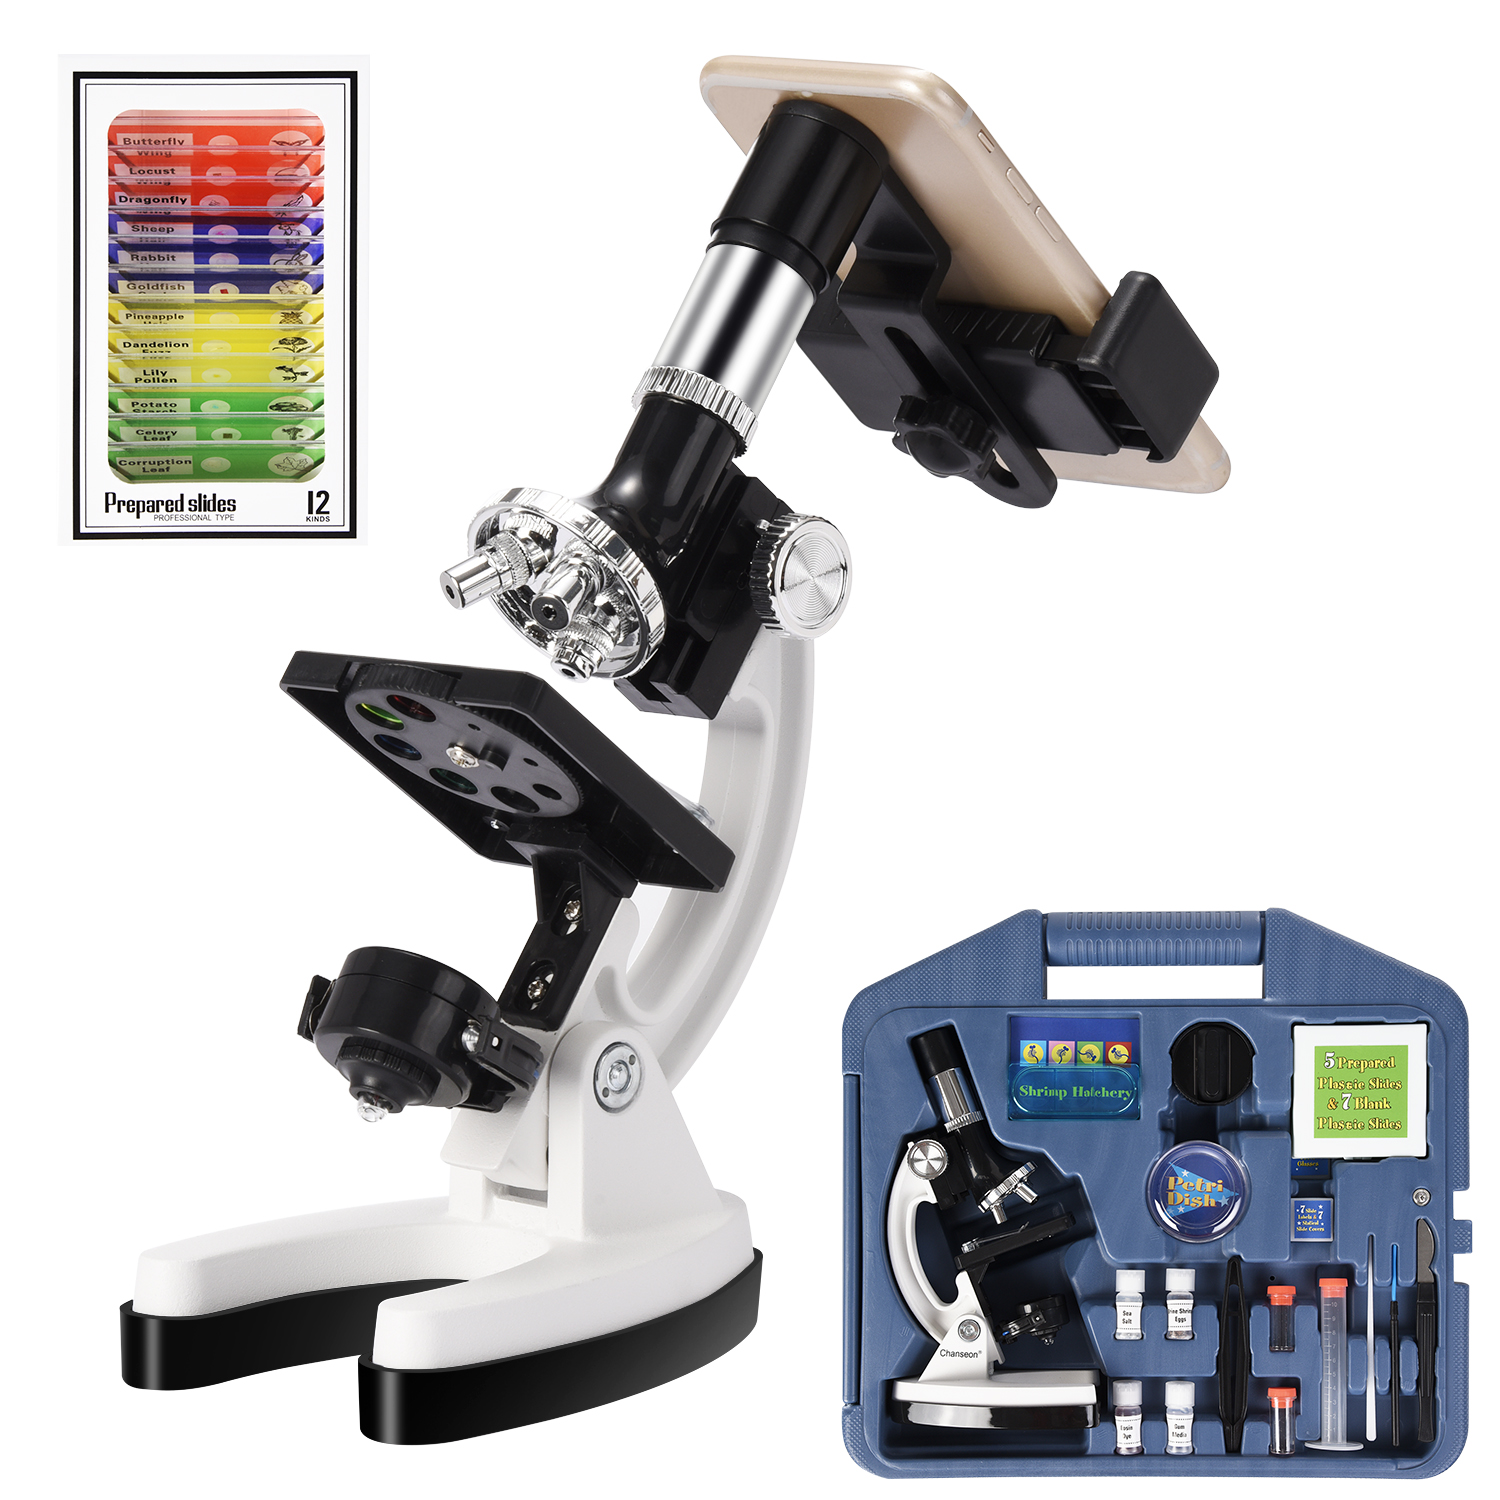 100X-1200X Kids Beginner Biological Microscope Metal Body With Phone Holder Adapter Plastic Slides And Carrying Box